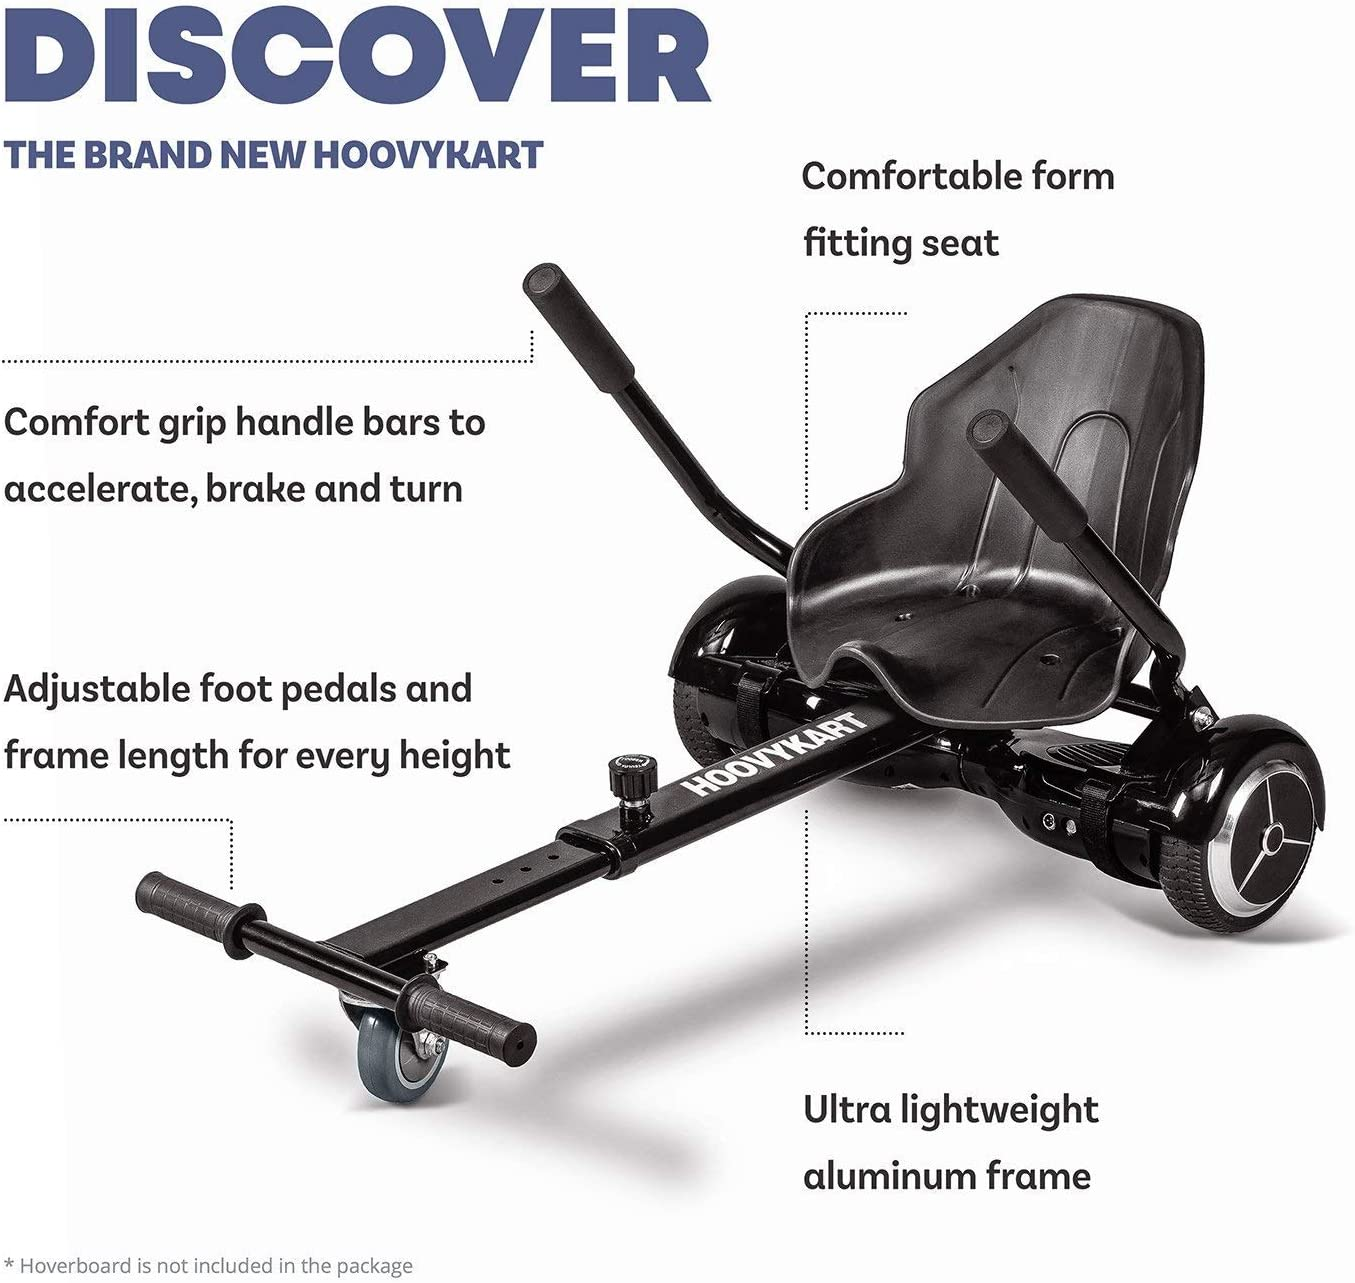 HoverBoard Not Included Self Balancing Scooter Safer For Kids Compatible with All Hoverboards Fastwheel Go Kart Conversion Kit for Hoverboards All Ages All Heights